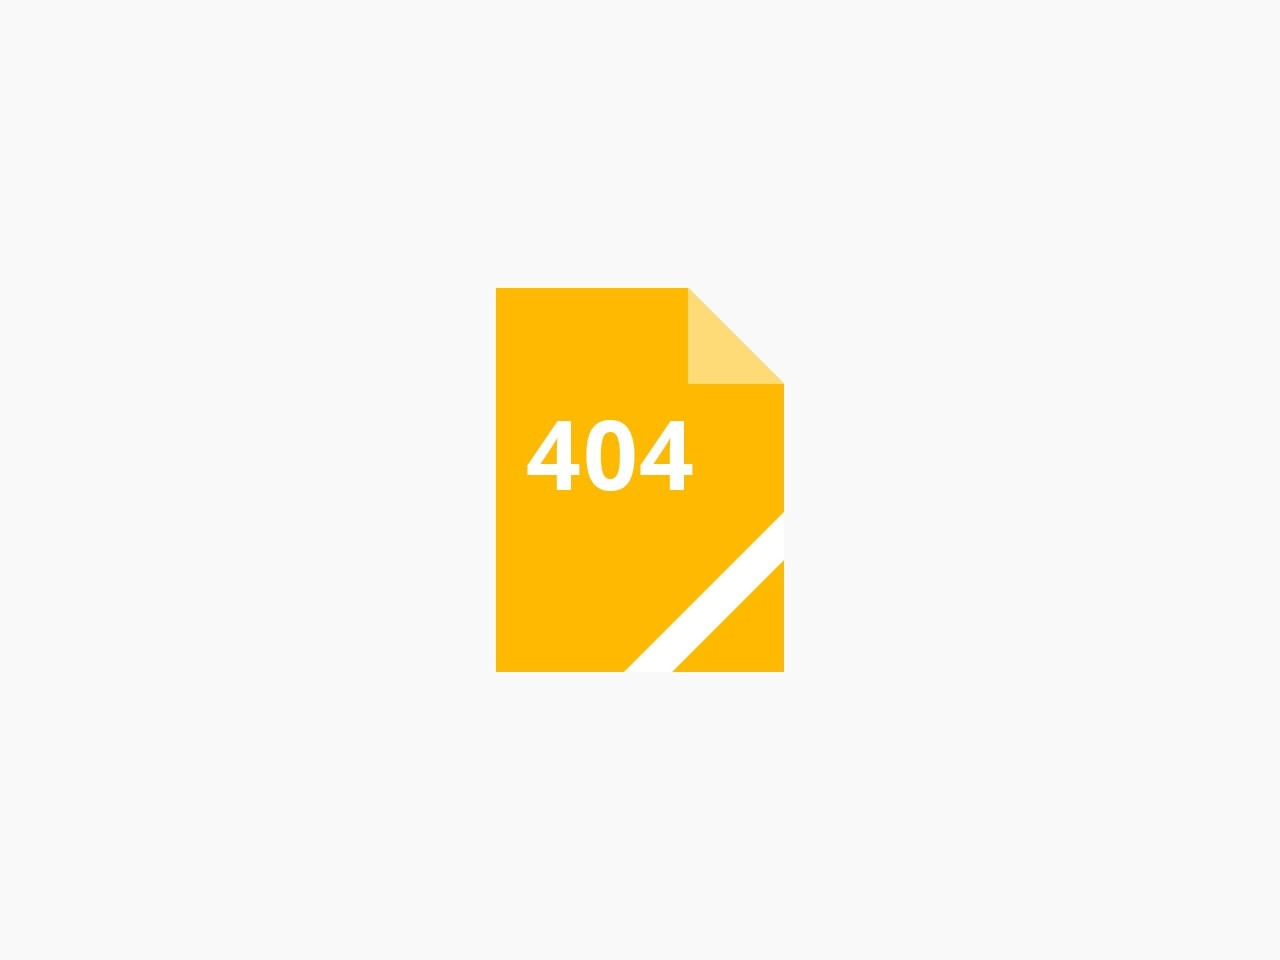 Contract approval clears way for storm drain in North Las Vegas